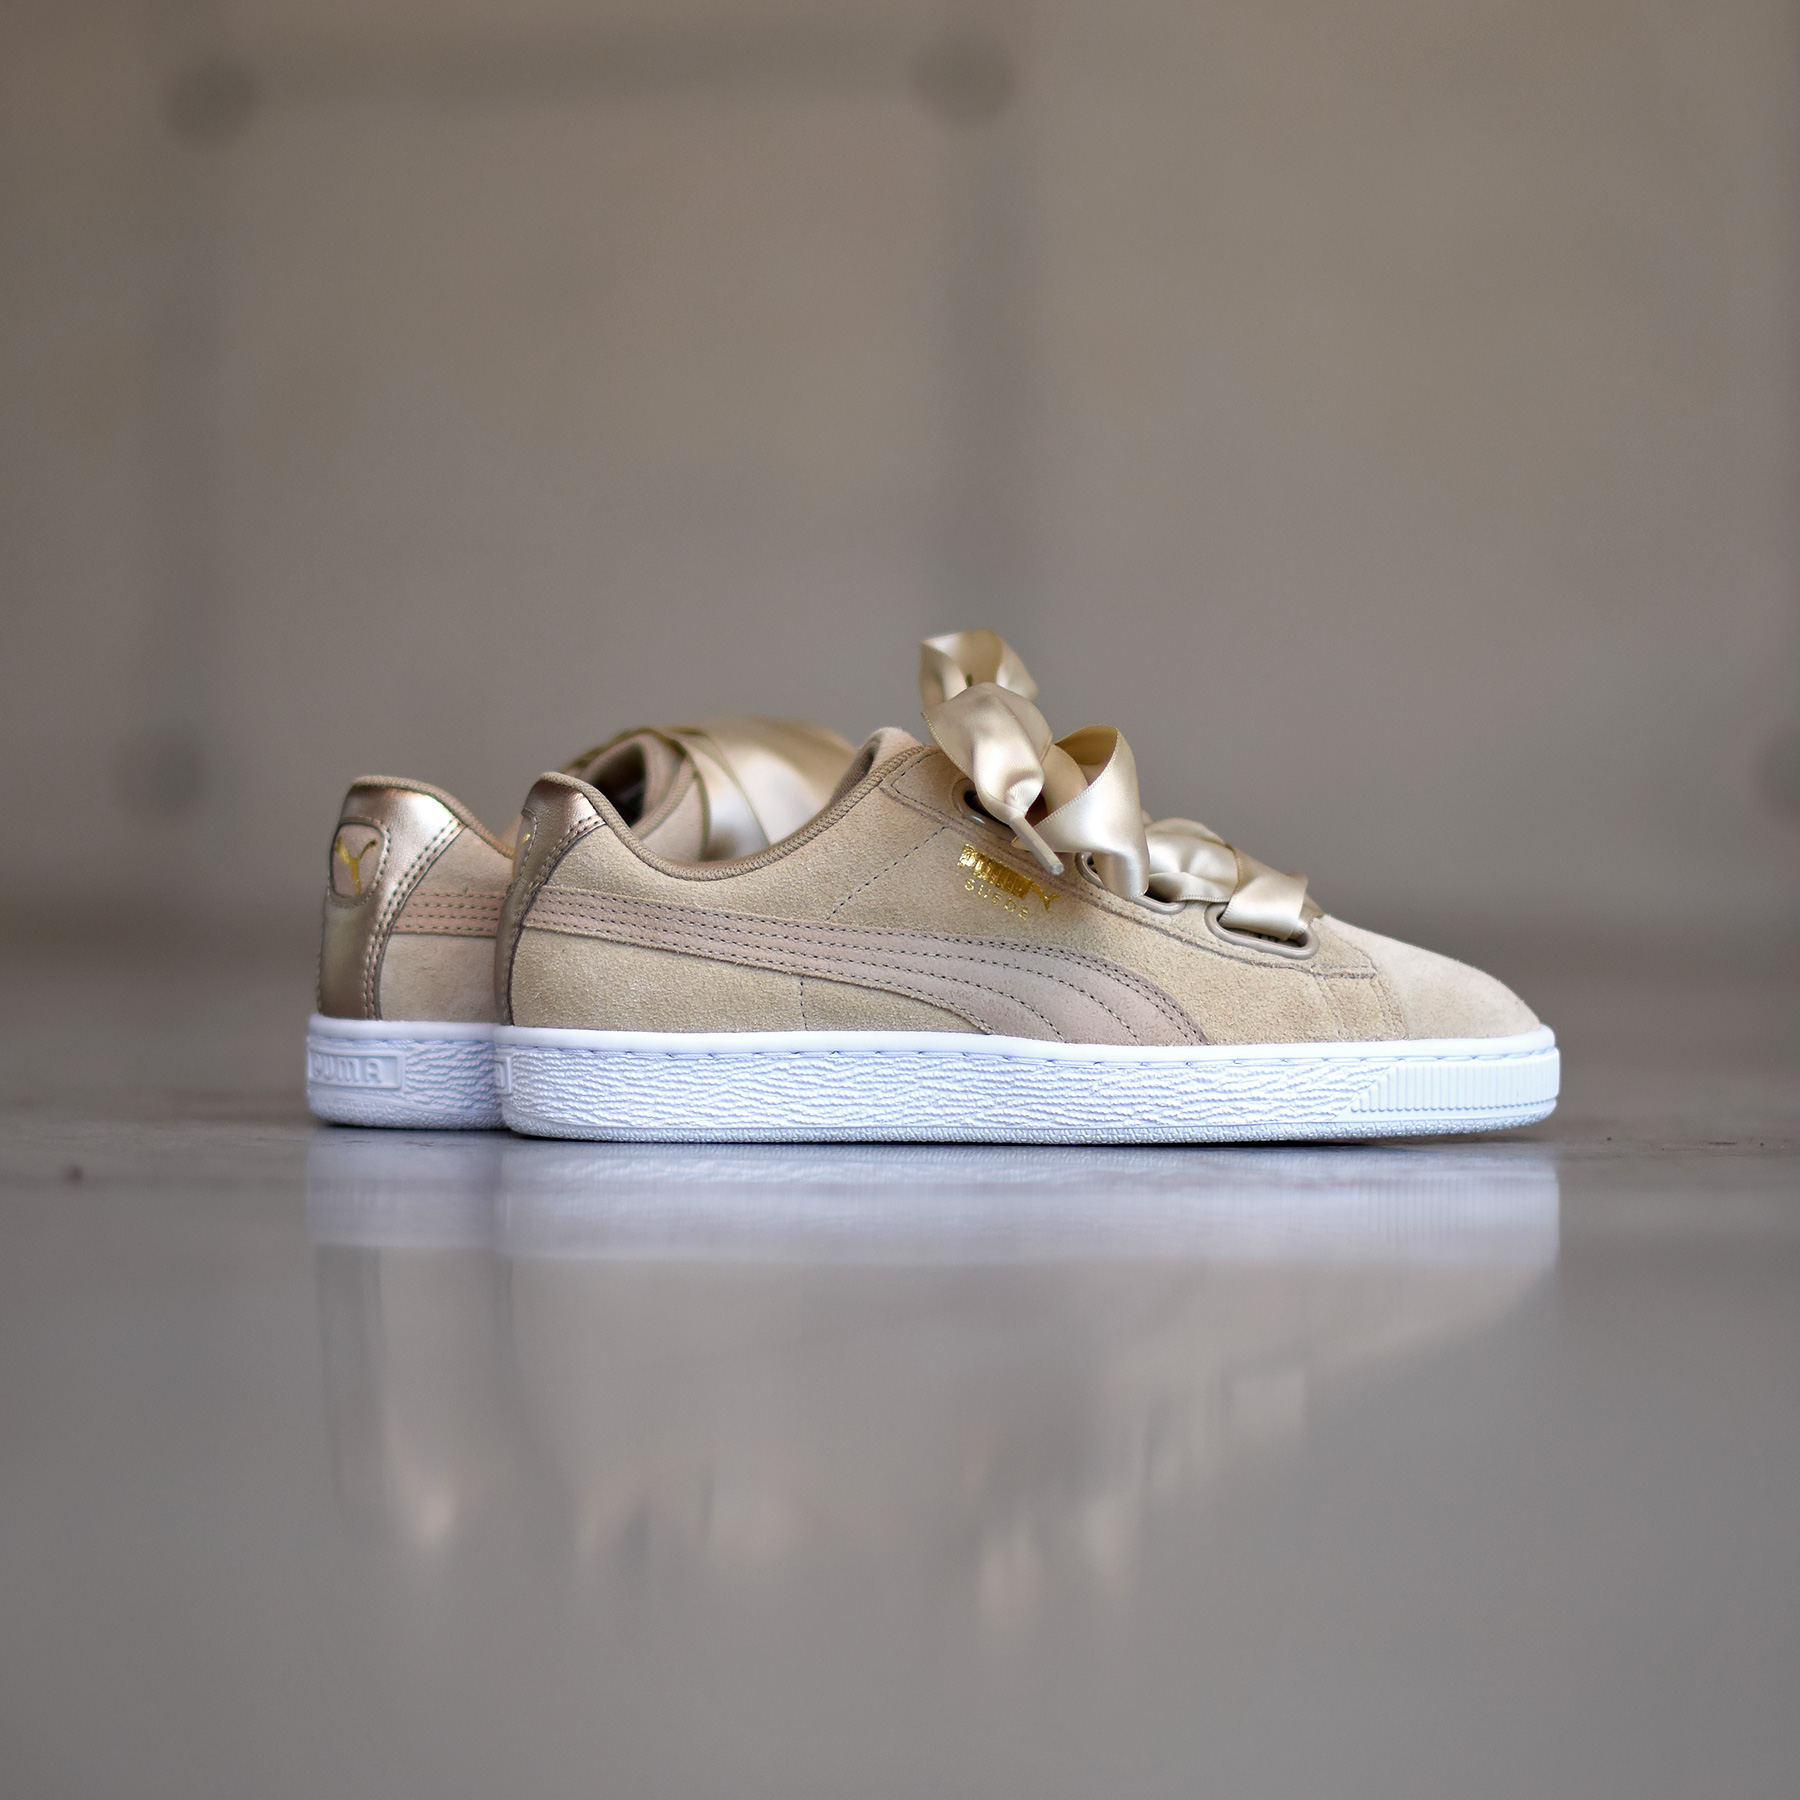 Puma Suede Heart Metallic Pack